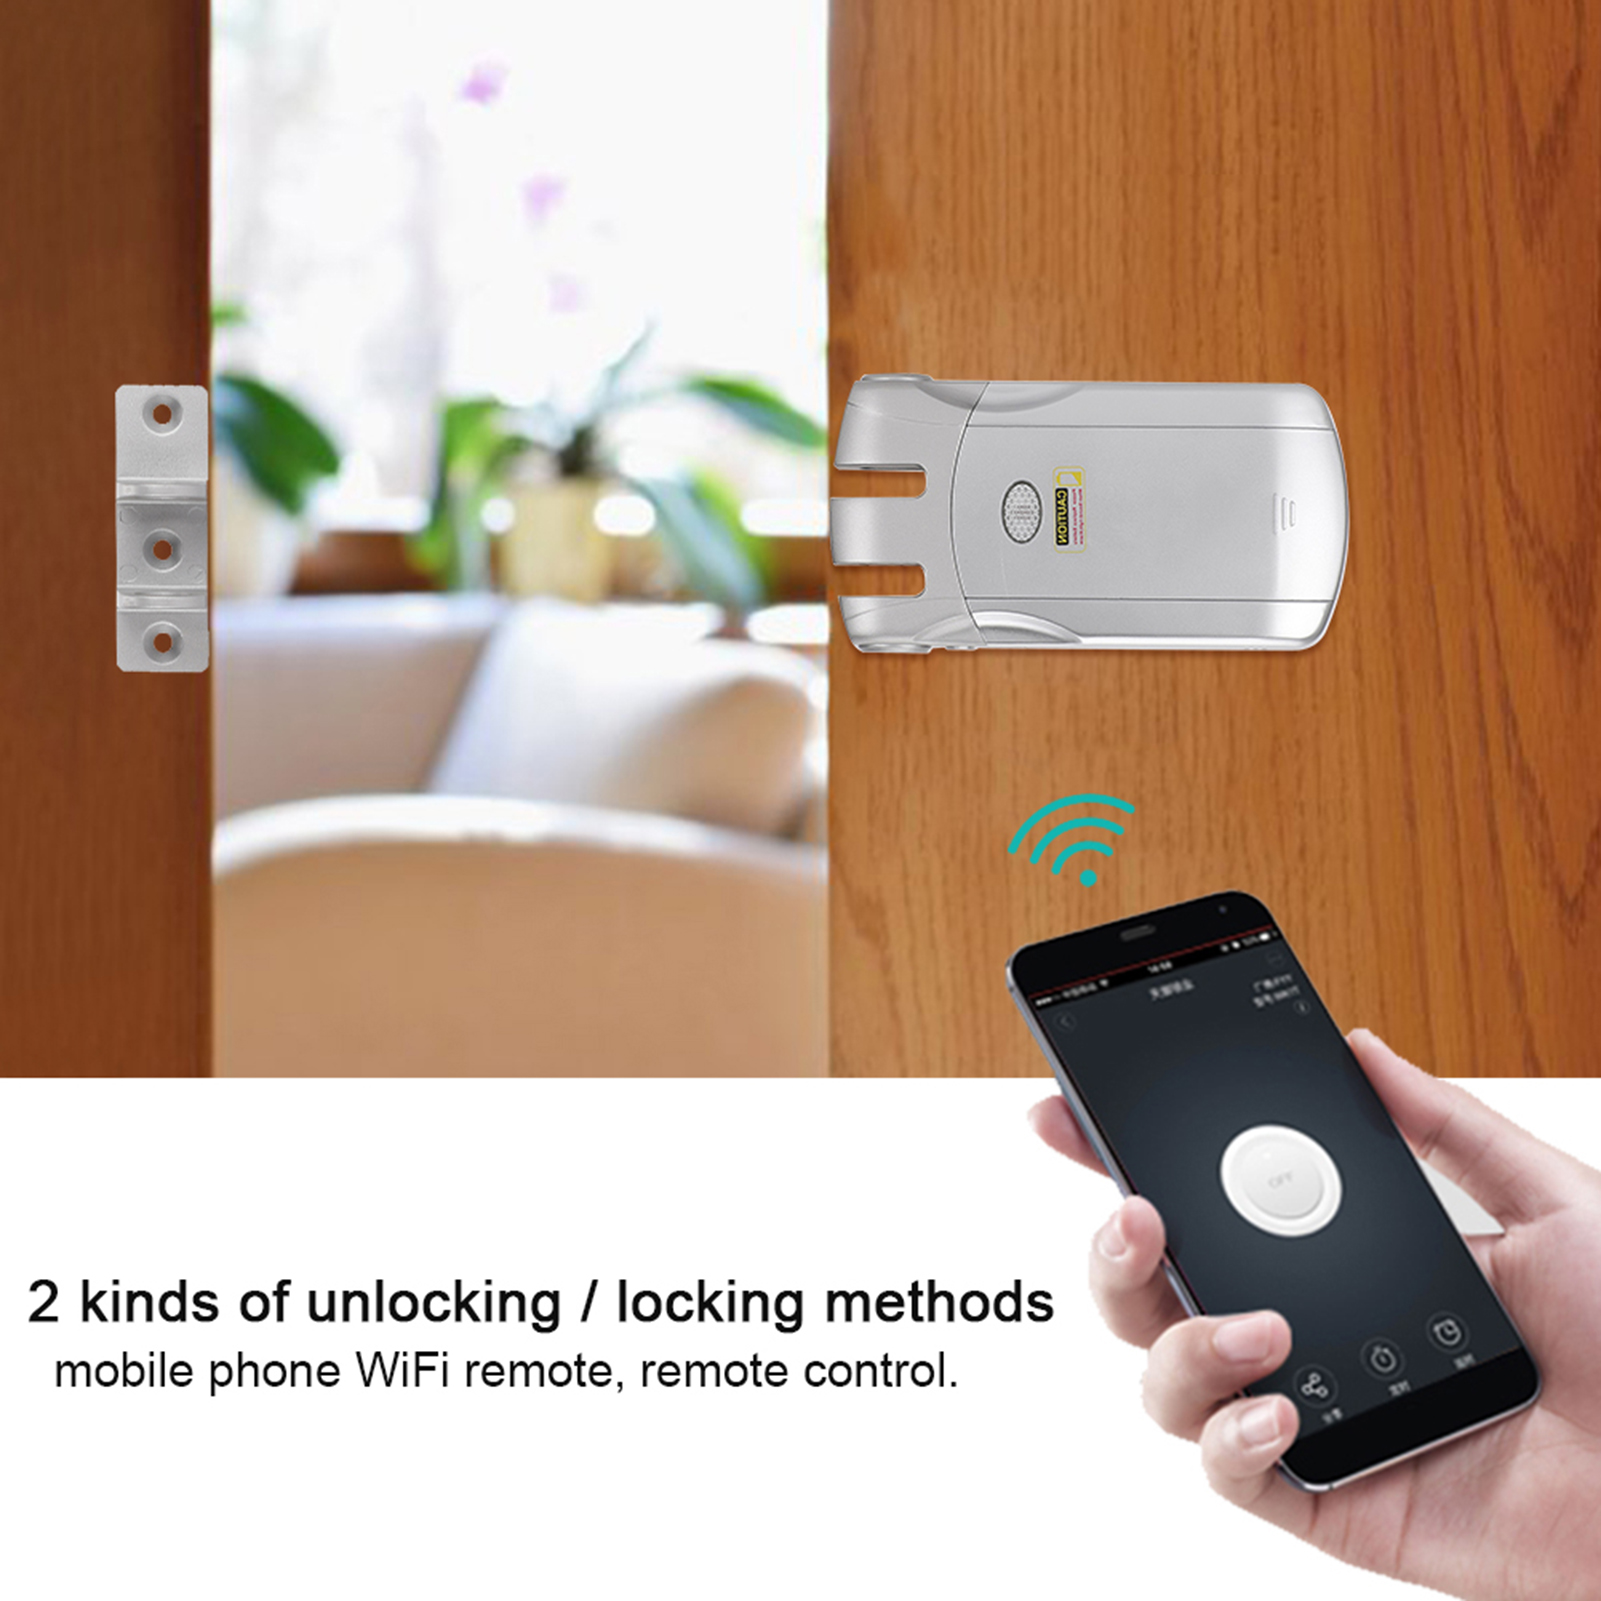 433Mhz-WIFI-Wireless-Door-Lock-Remote-Control-USB-Charging-For-Home-Security miniature 18